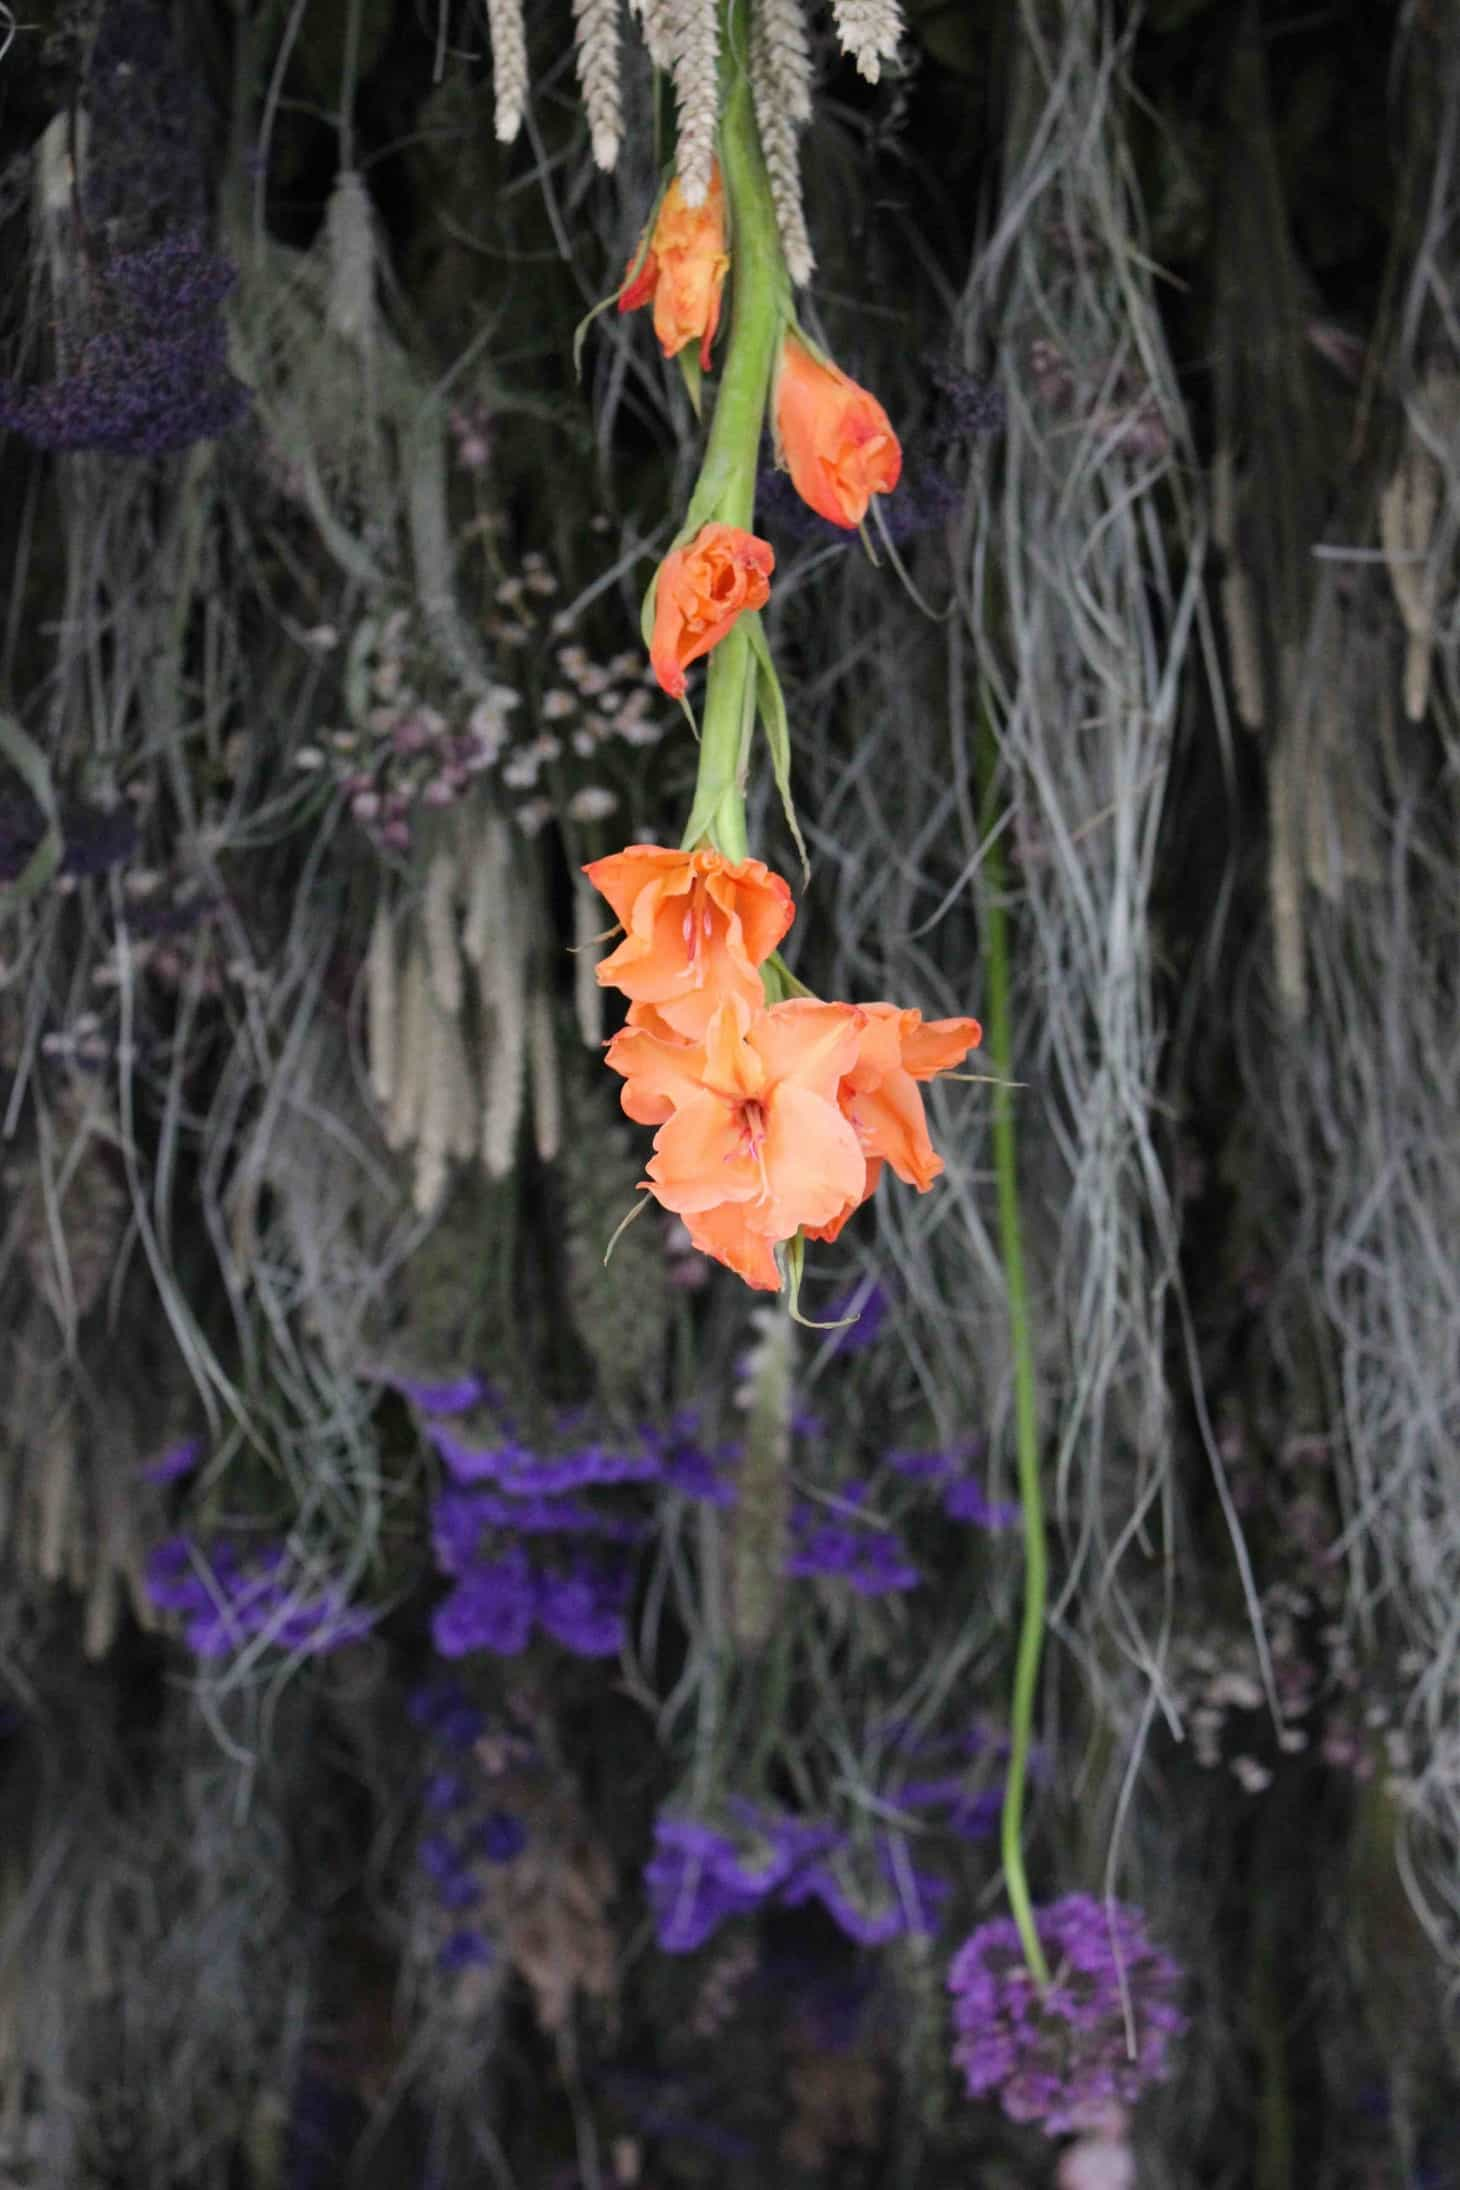 Chelsea flower show 2015, garden roses, rebecca louise law